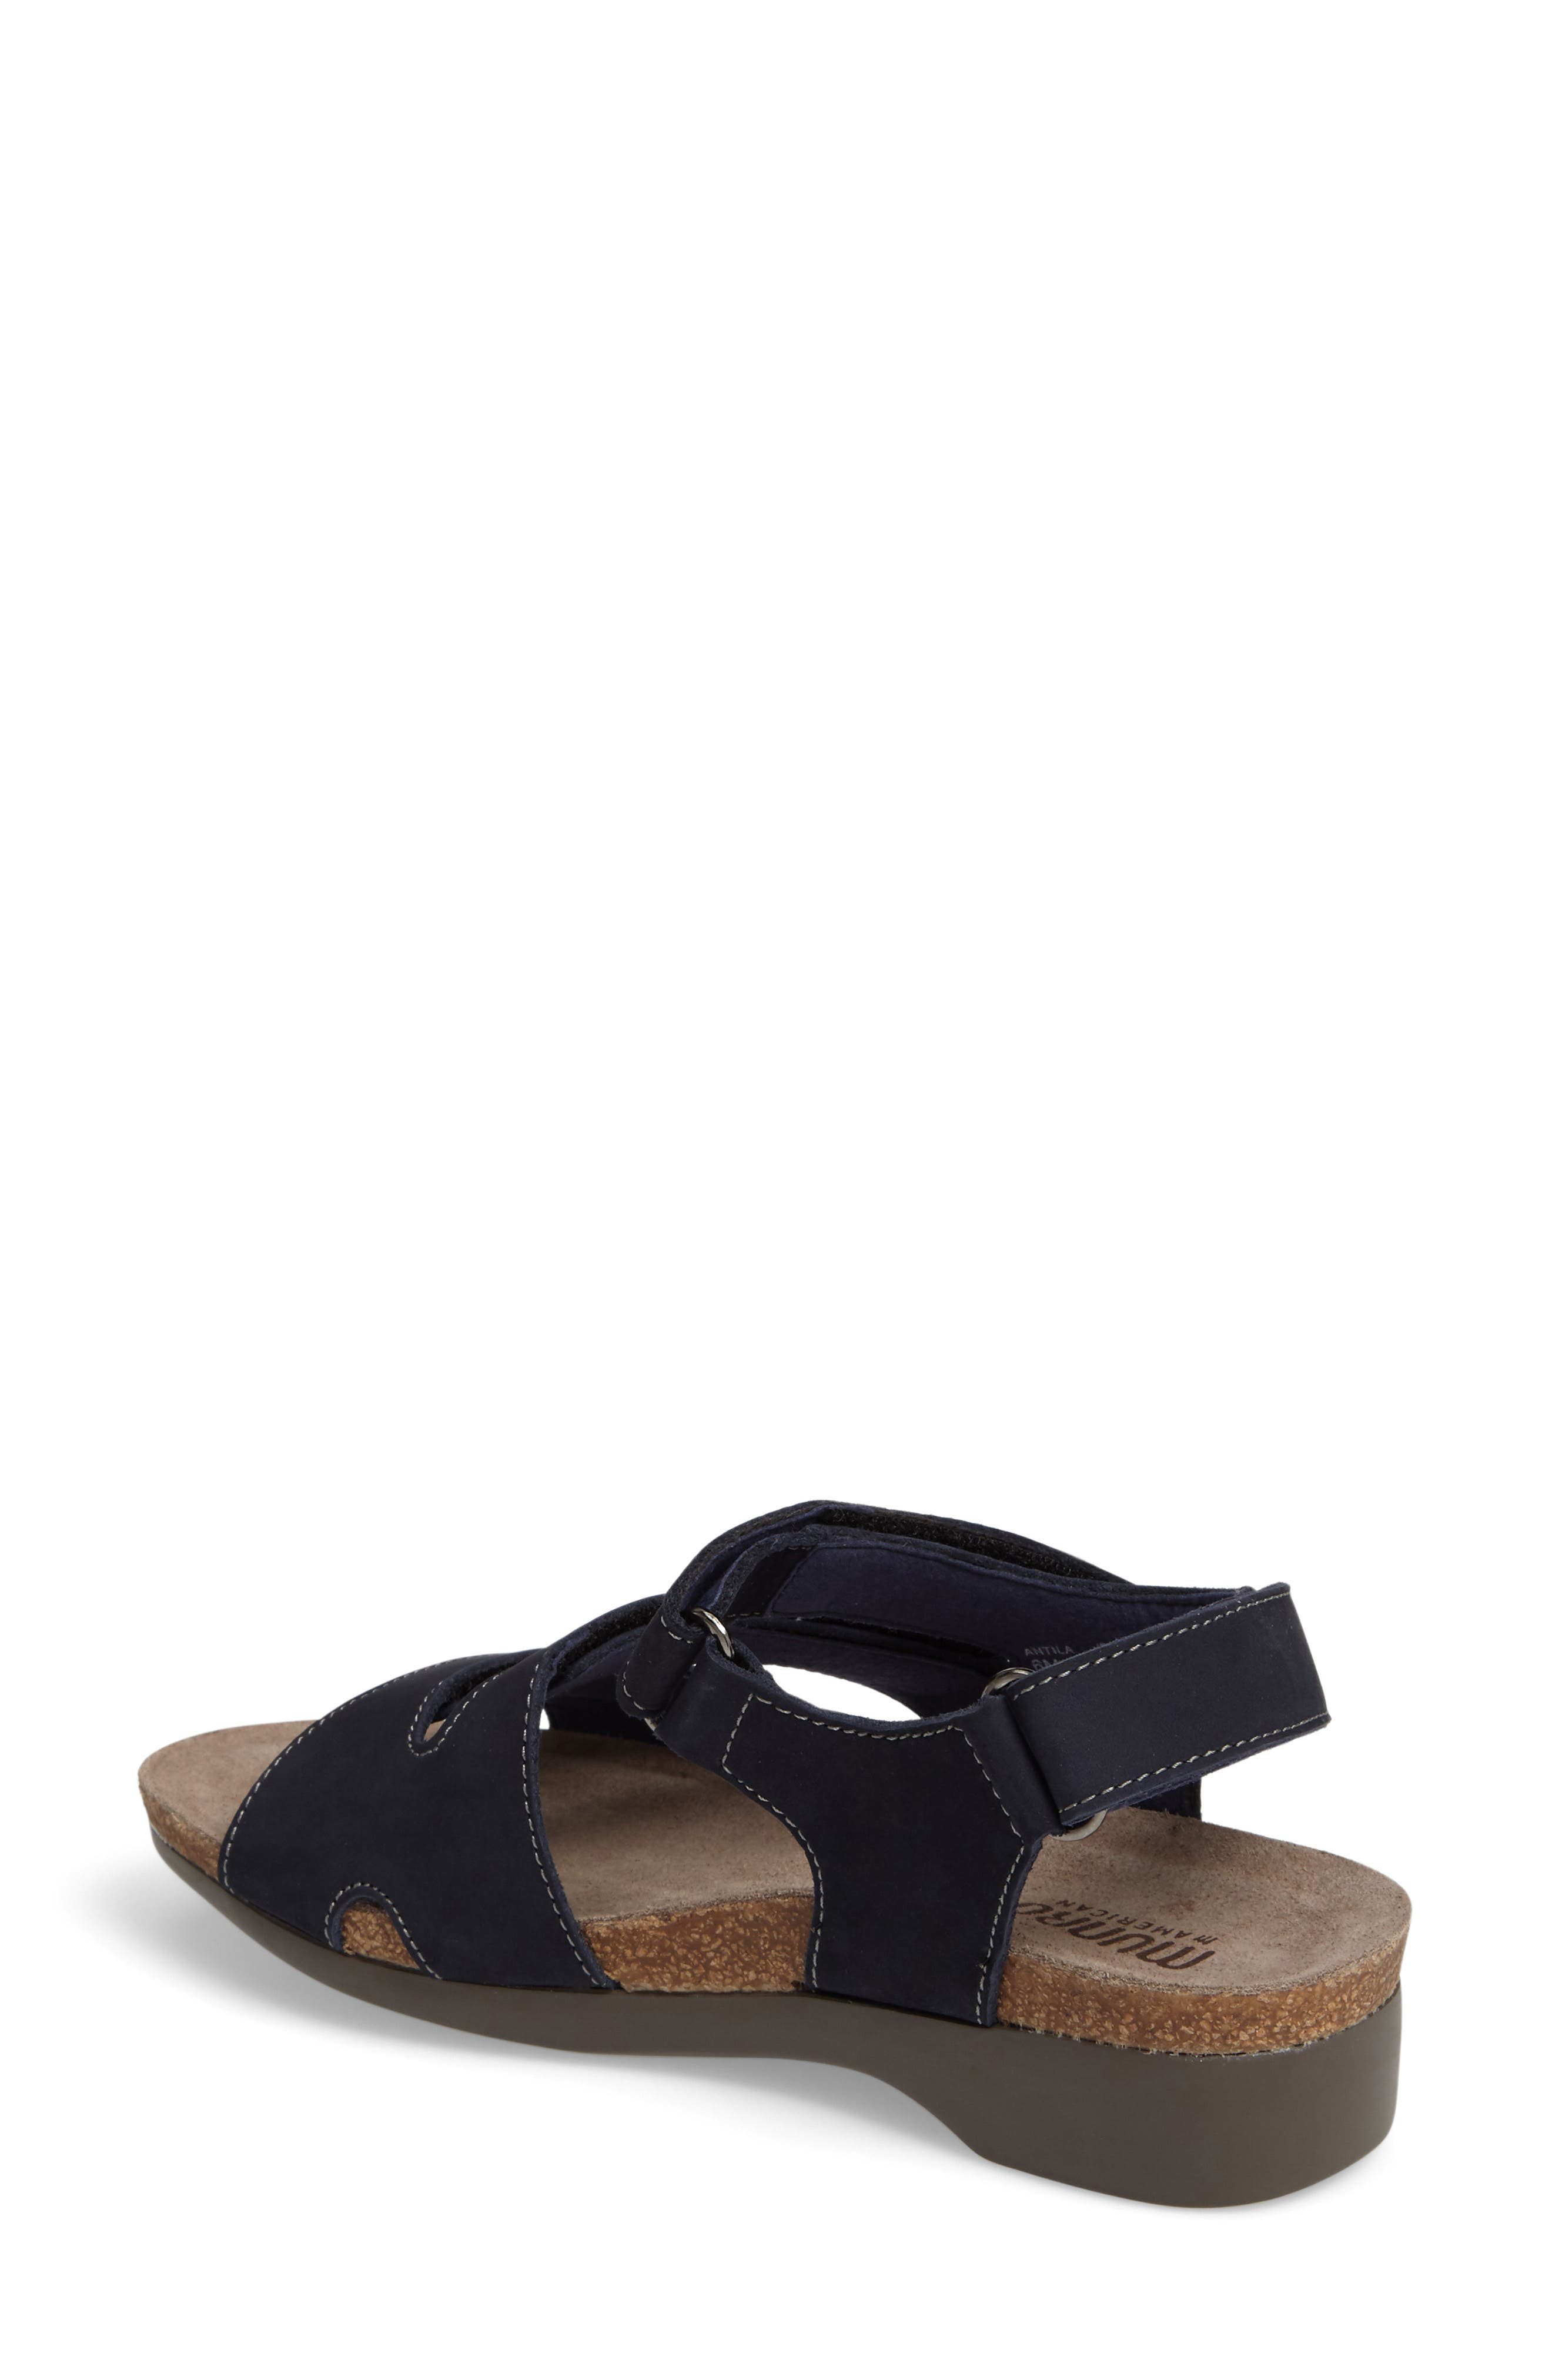 Alternate Image 2  - Munro Antila Sandal (Women)